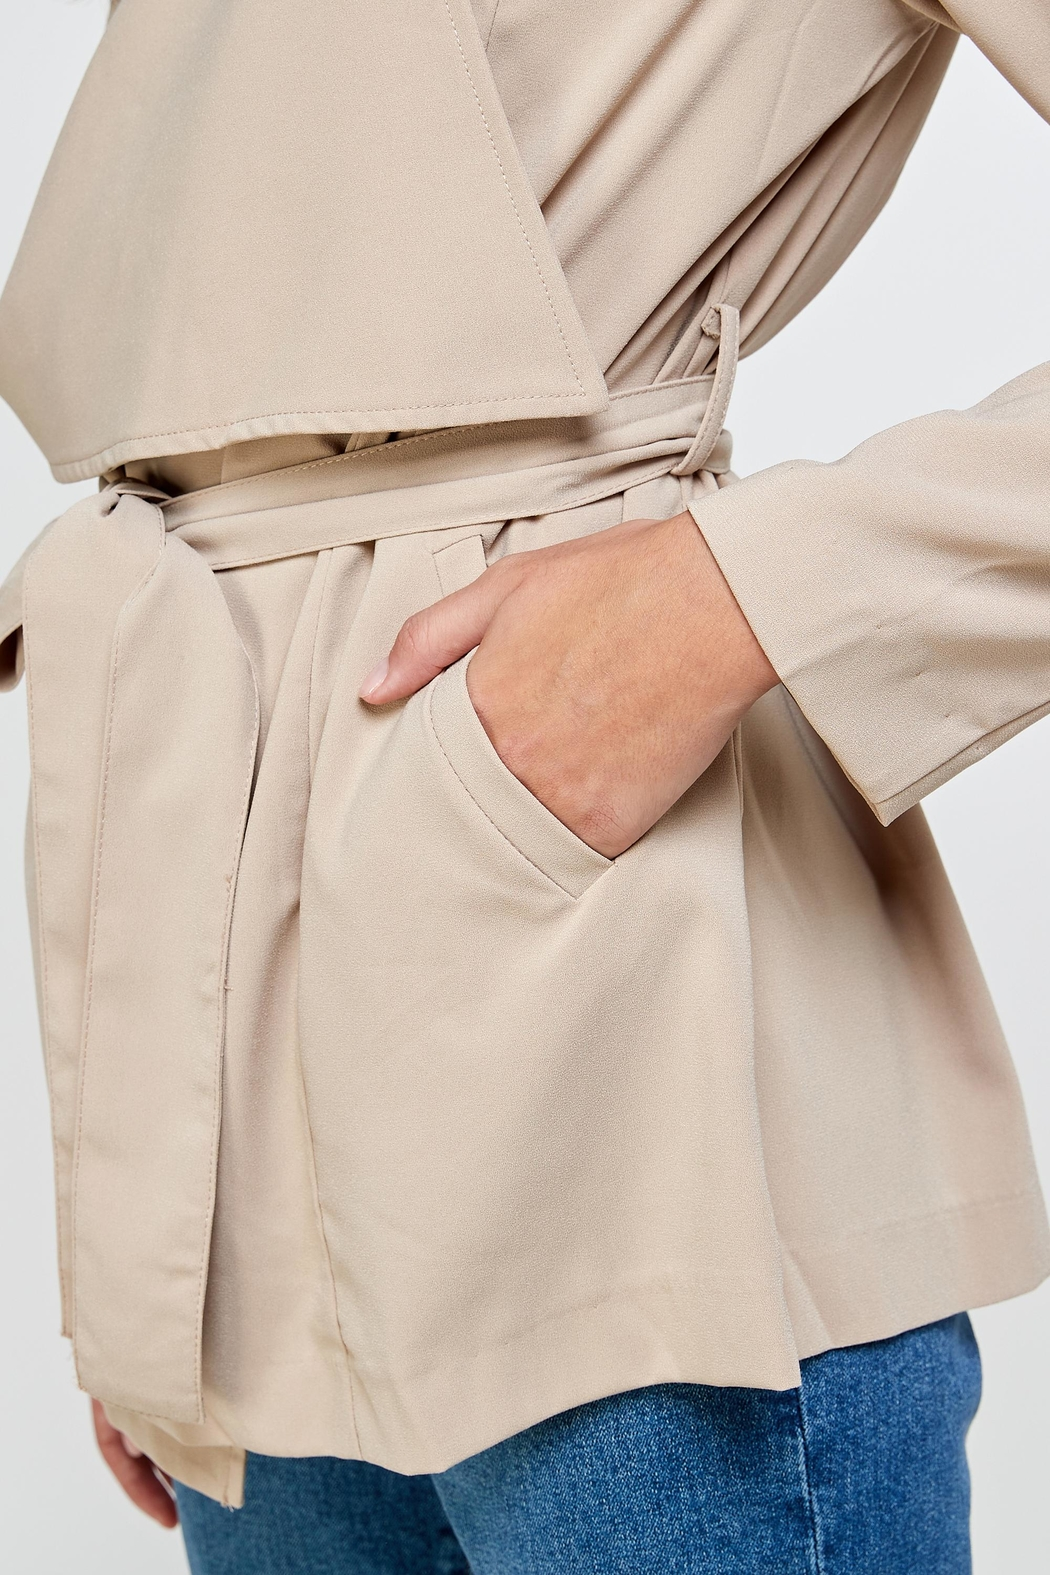 Kaii Draped Collar Trench Coat Jacket Top - Side Cropped Image